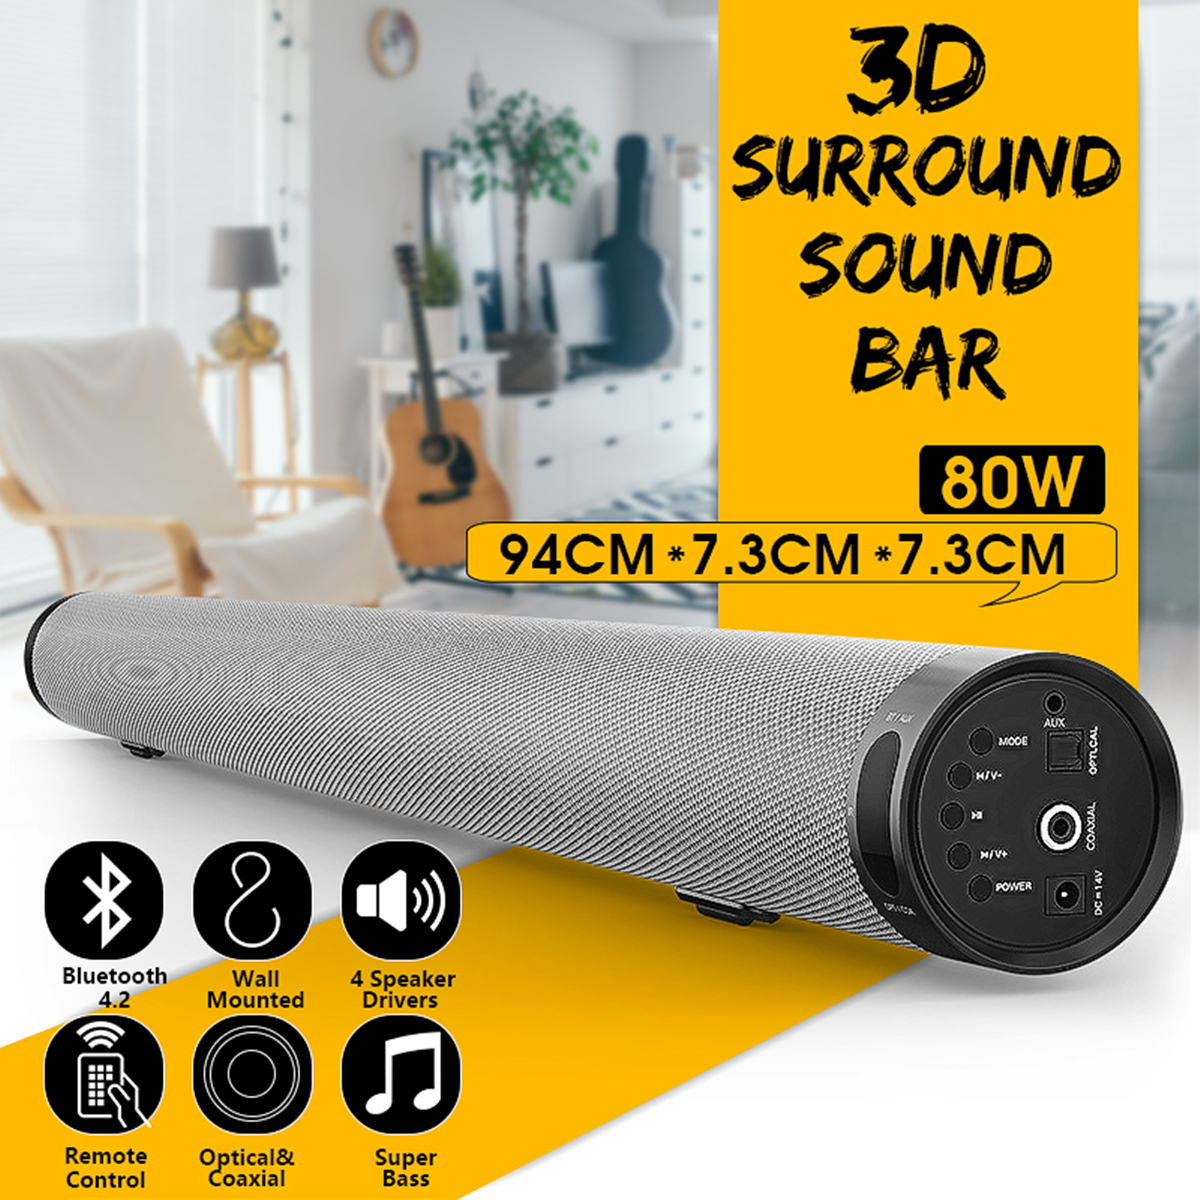 Bluetooth Soundbar TV Wireless Speaker Metal Long Cylindrical Stereo Audio for Home PartyBluetooth Playback Wall Soundbar new gbj free shipping home aluminum medical cabinet multi layer medical treatment first aid kit medicine storage portable